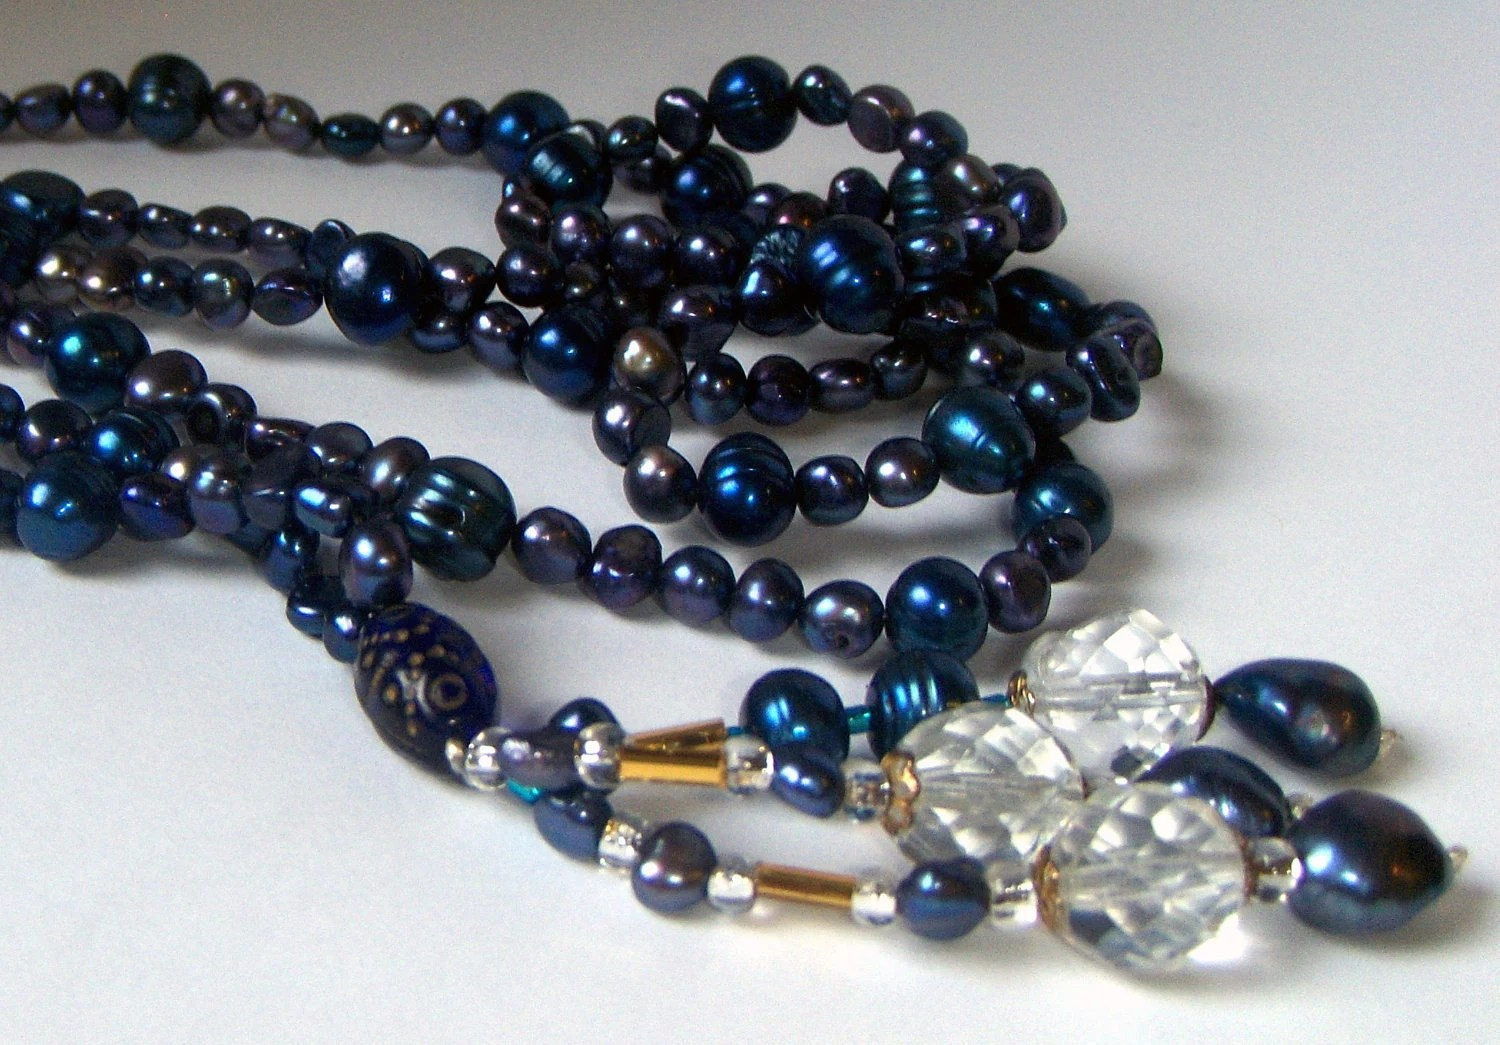 MovableArt / Blue Pearl Necklace Blue Pearl Bracelet Royal Sapphire, Navy Blue Freshwater Pearls